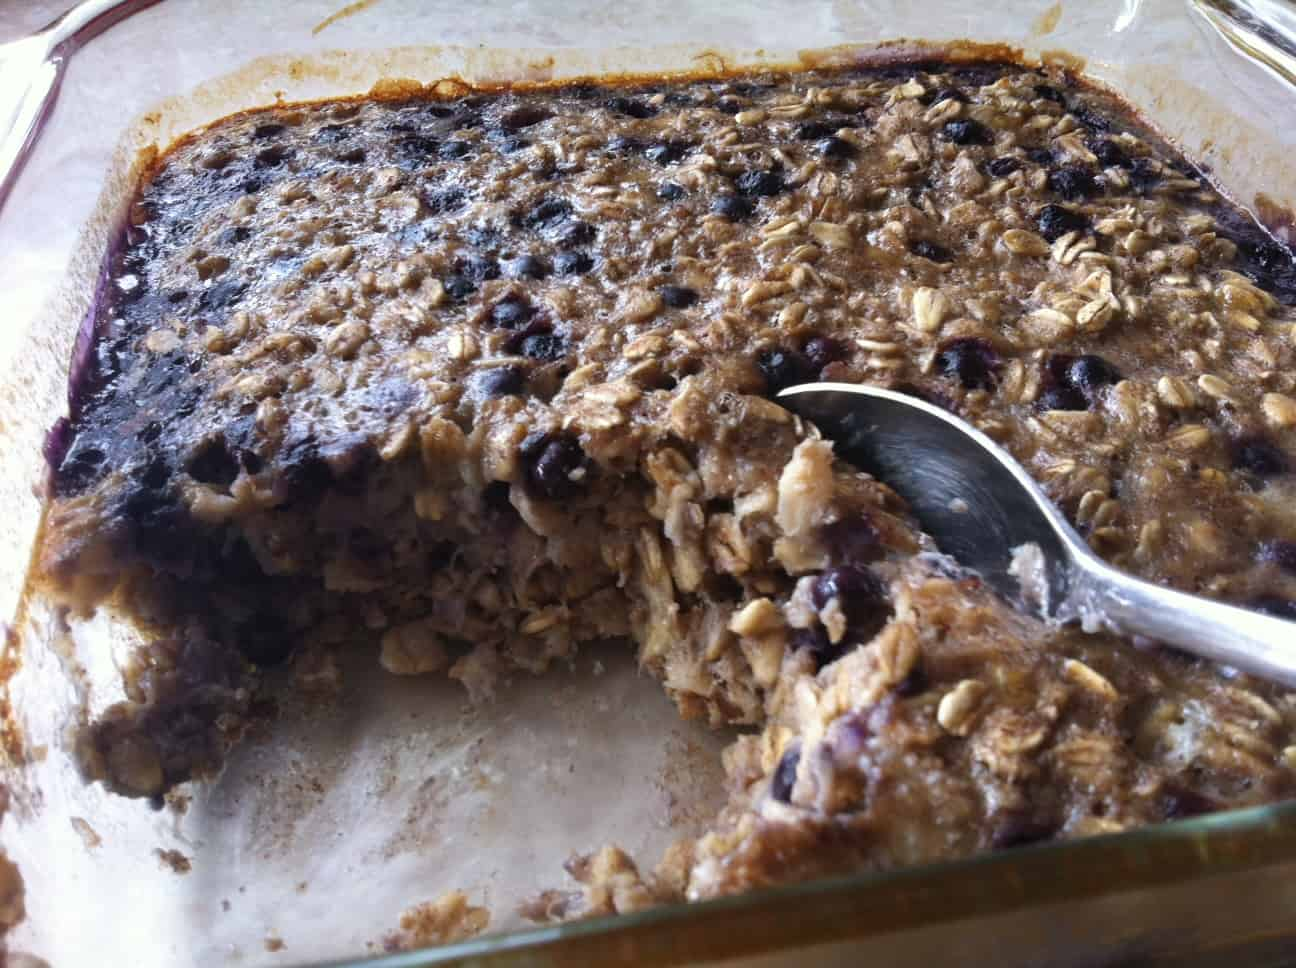 Baked Blueberry and Banana Oatmeal: